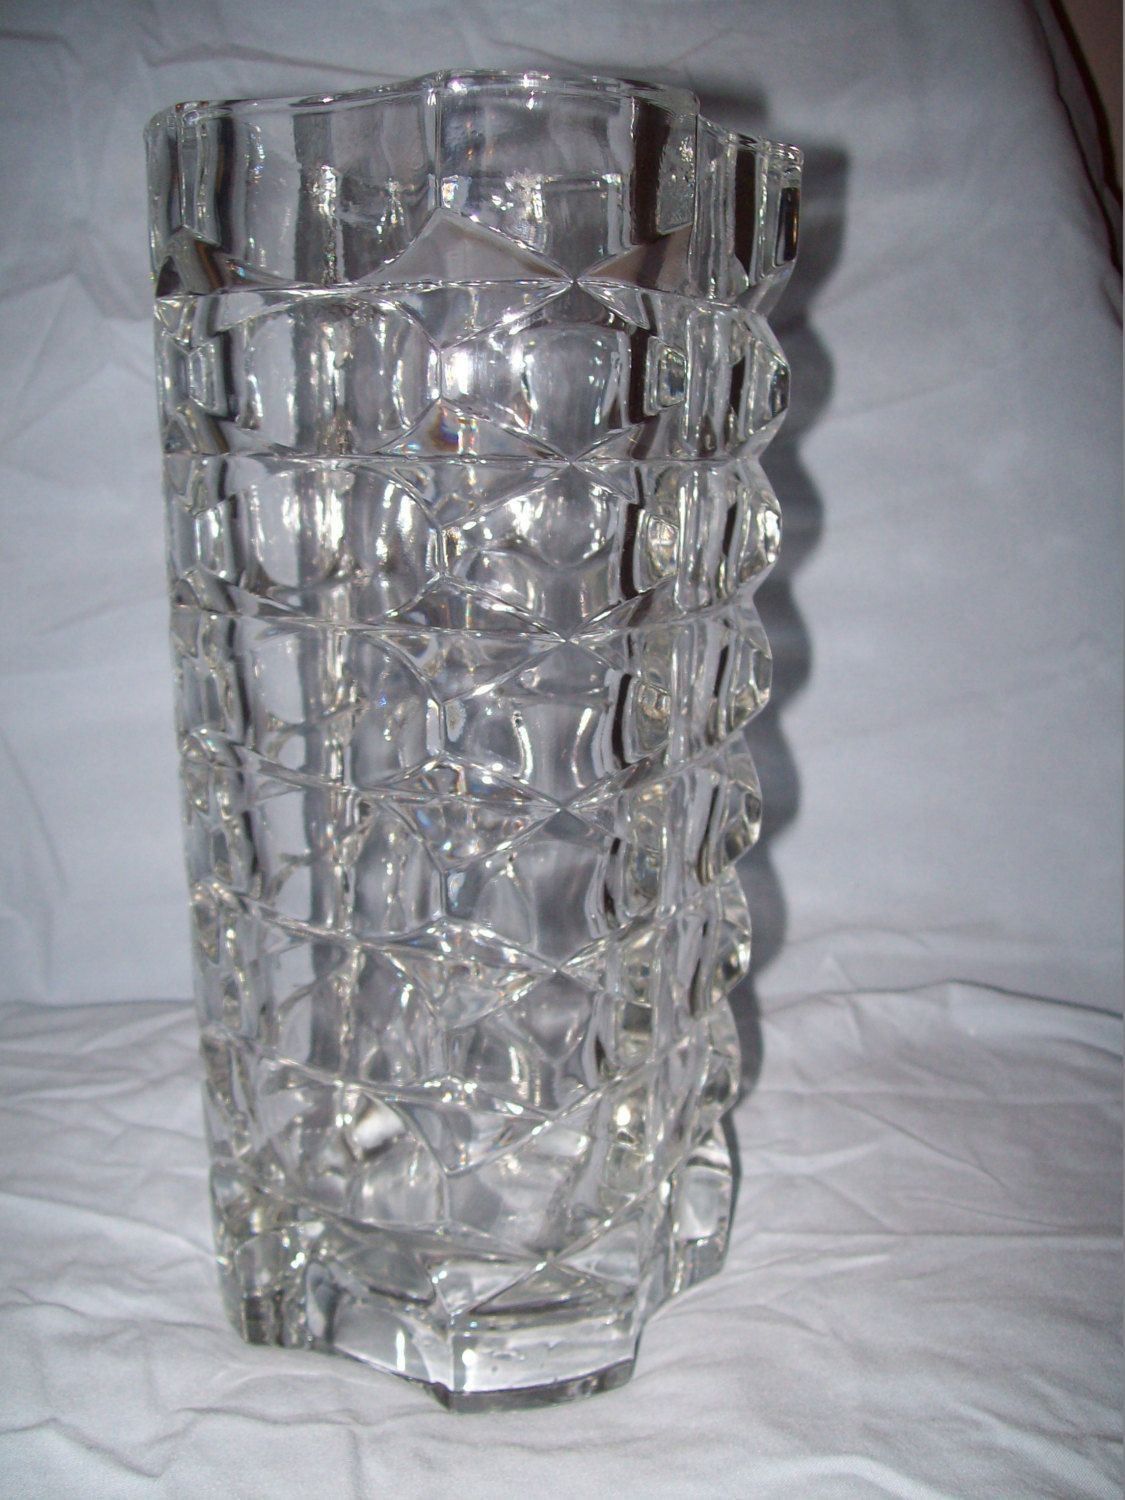 clear acrylic cylinder vase of large clear glass vase images 4 5 od x 4 25 id x 23 7 8 long for large clear glass vase pics clear glass very old large vase leaded glass very heavy 66